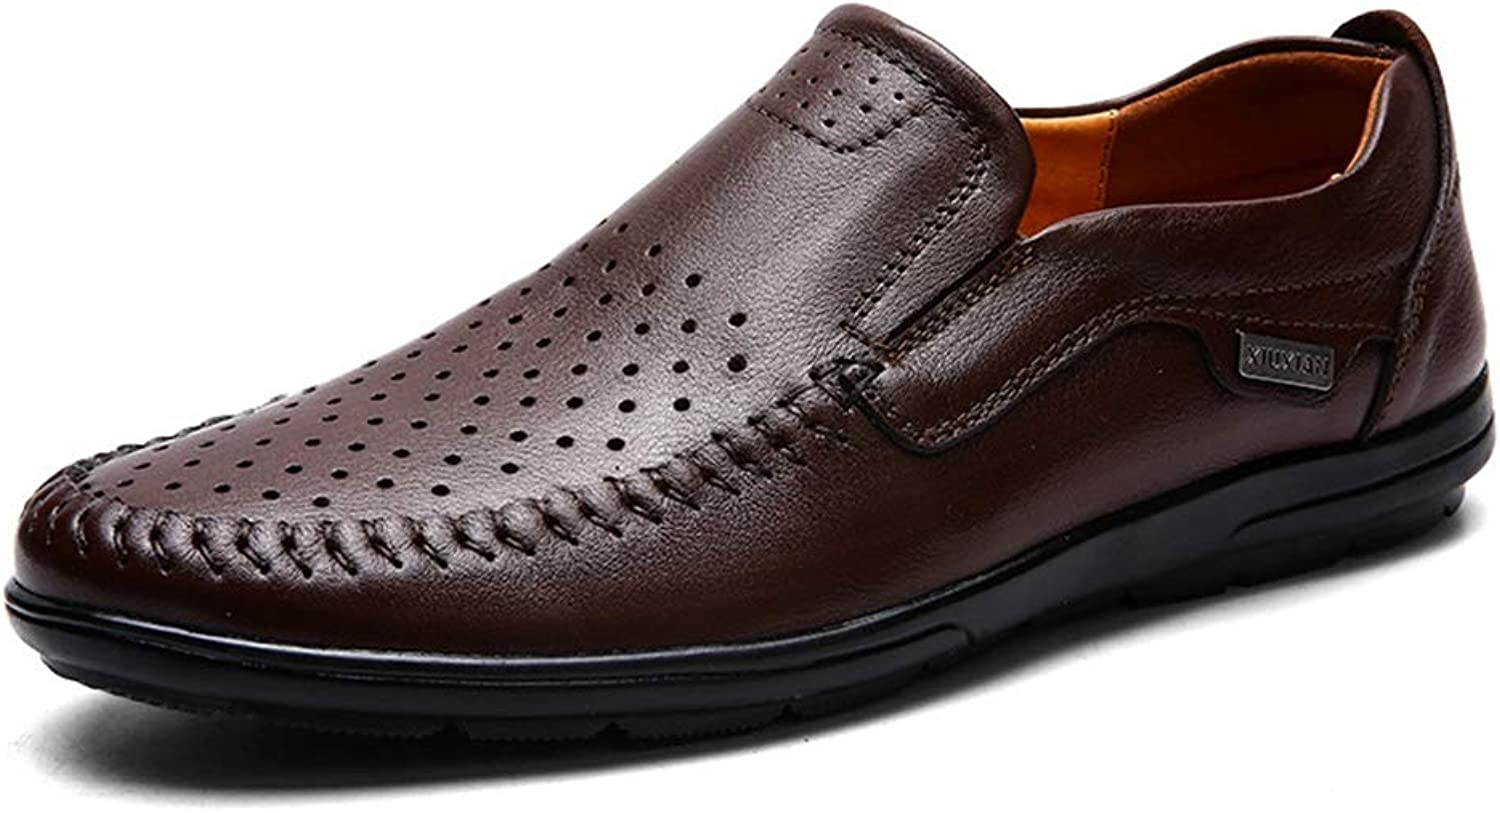 2019 herr Oxfordskor, Oxford skor for män Formal skor OX läder Slip On Style Round Toe Comfortable Low Top (Hollow valfri)